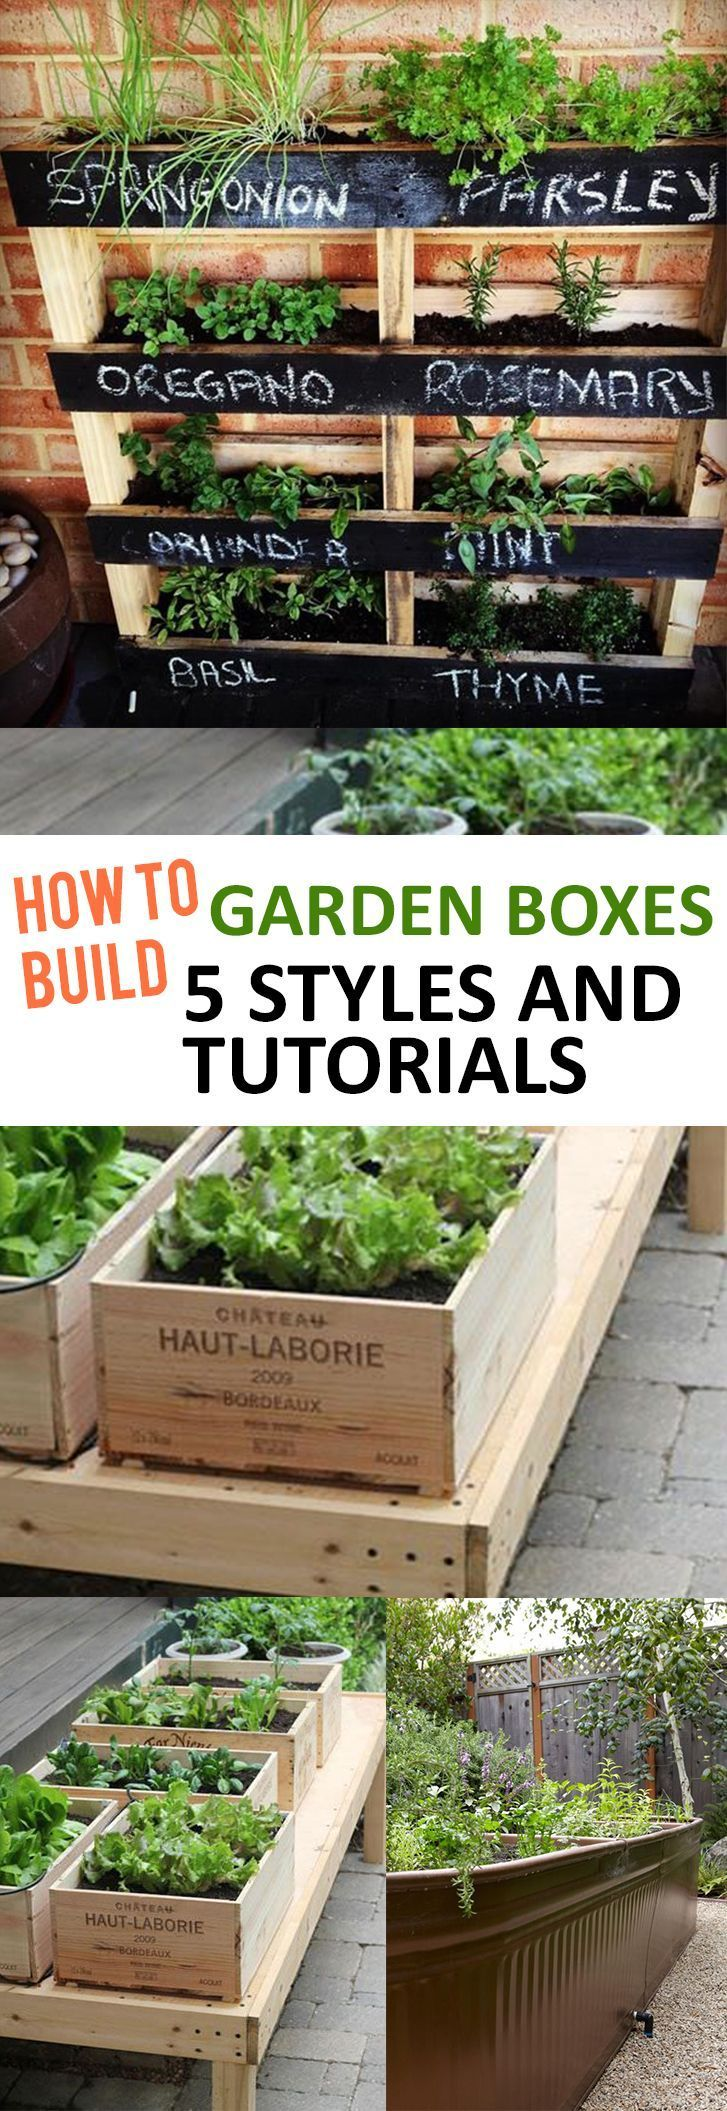 Photo of How to build garden boxes: 5 styles and tutorials – #boxes #build #garden #style … – gardening 2019